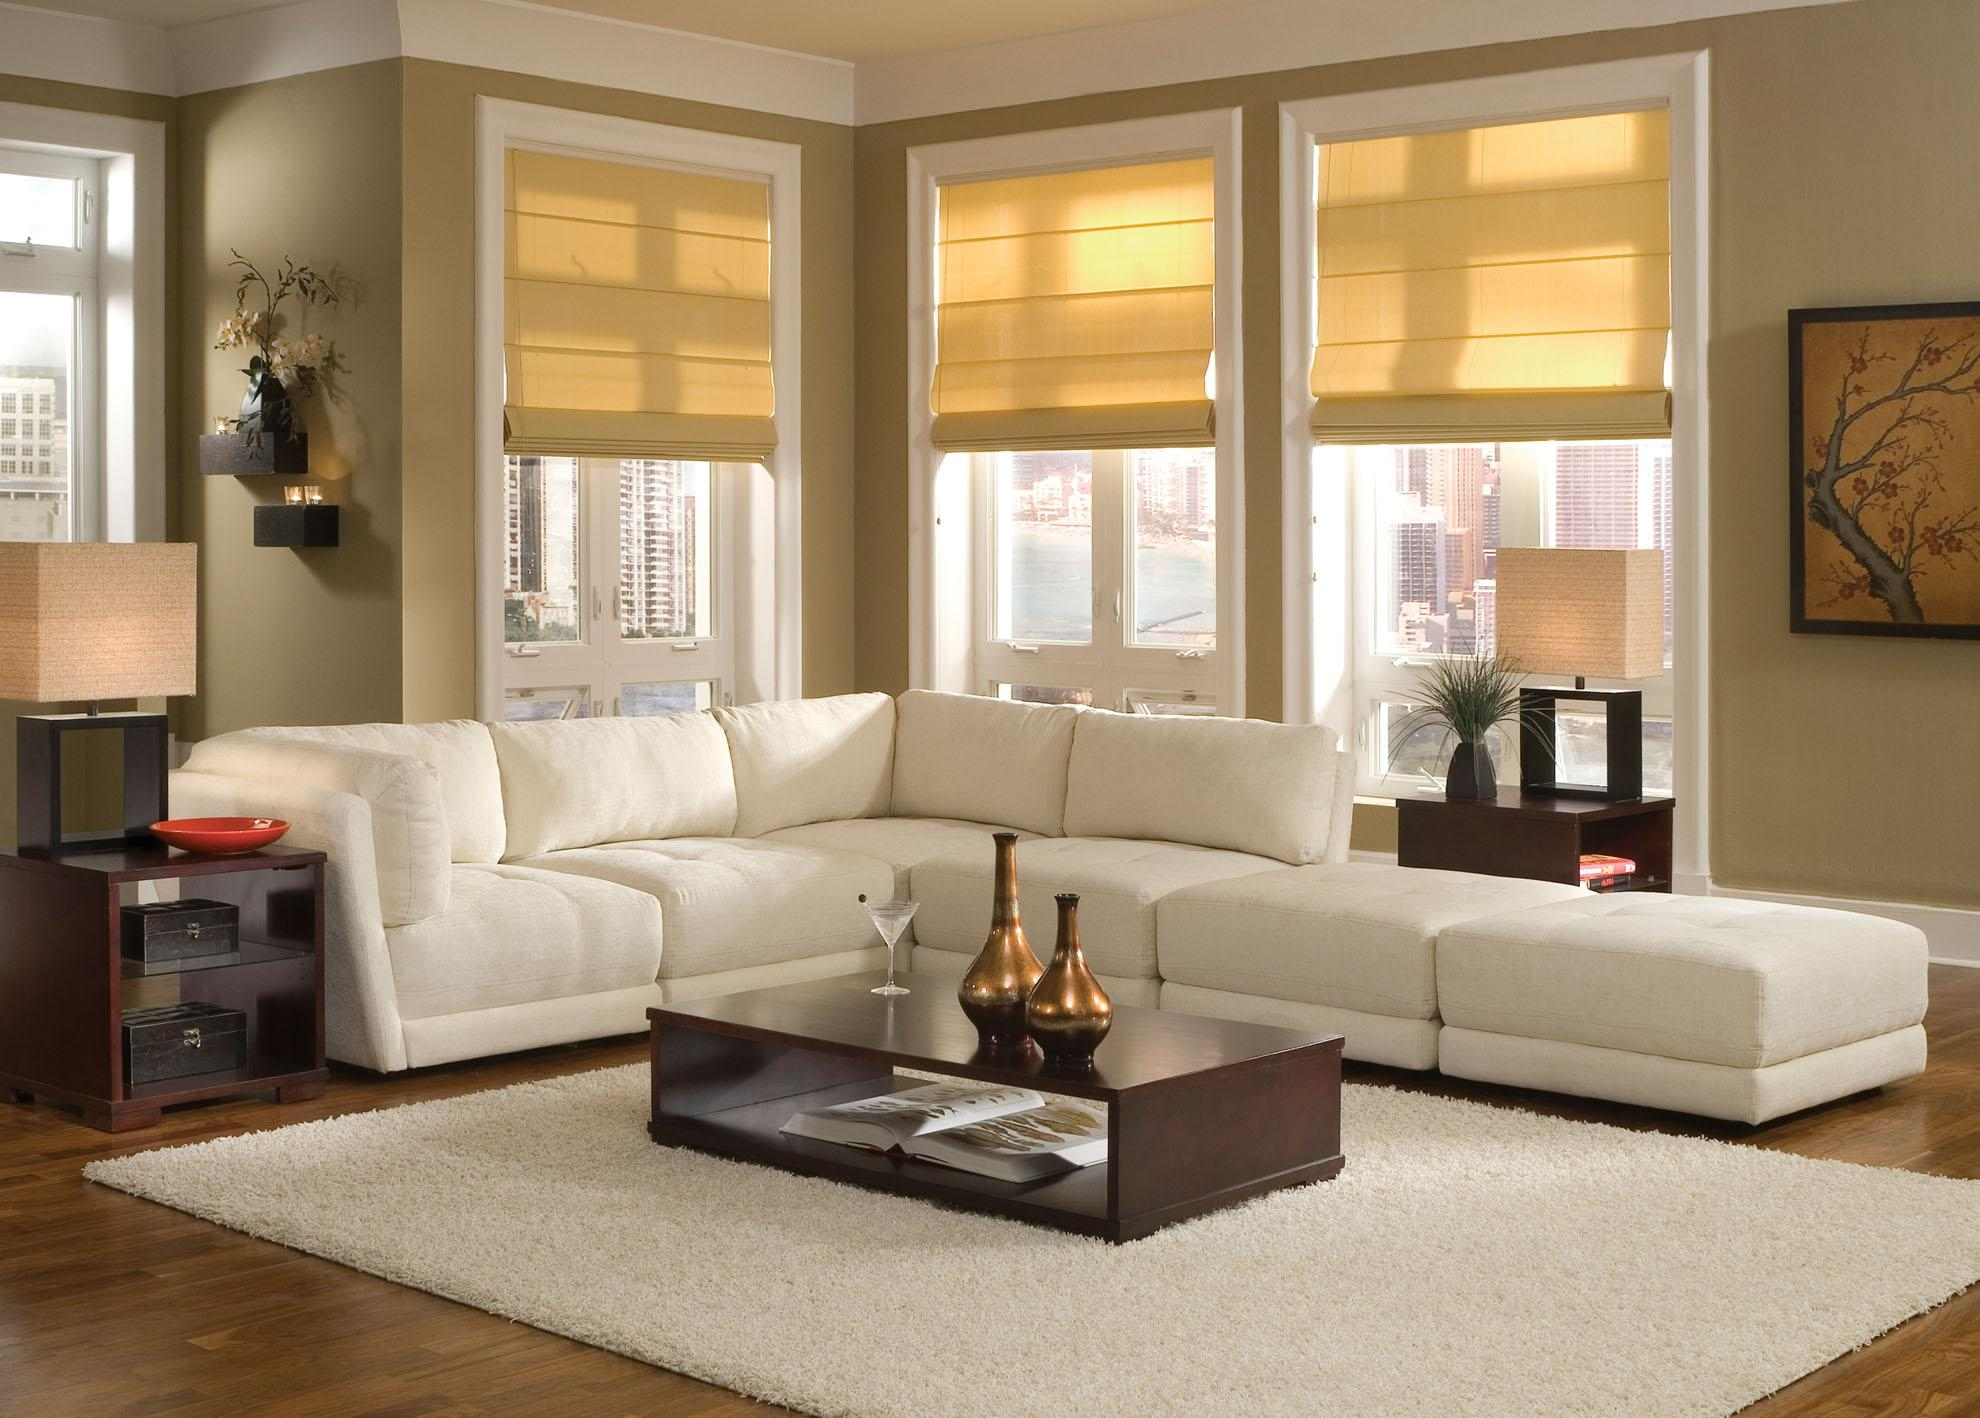 White Sofa Design Ideas & Pictures For Living Room With Regard To Decorating With A Sectional Sofa (View 2 of 15)